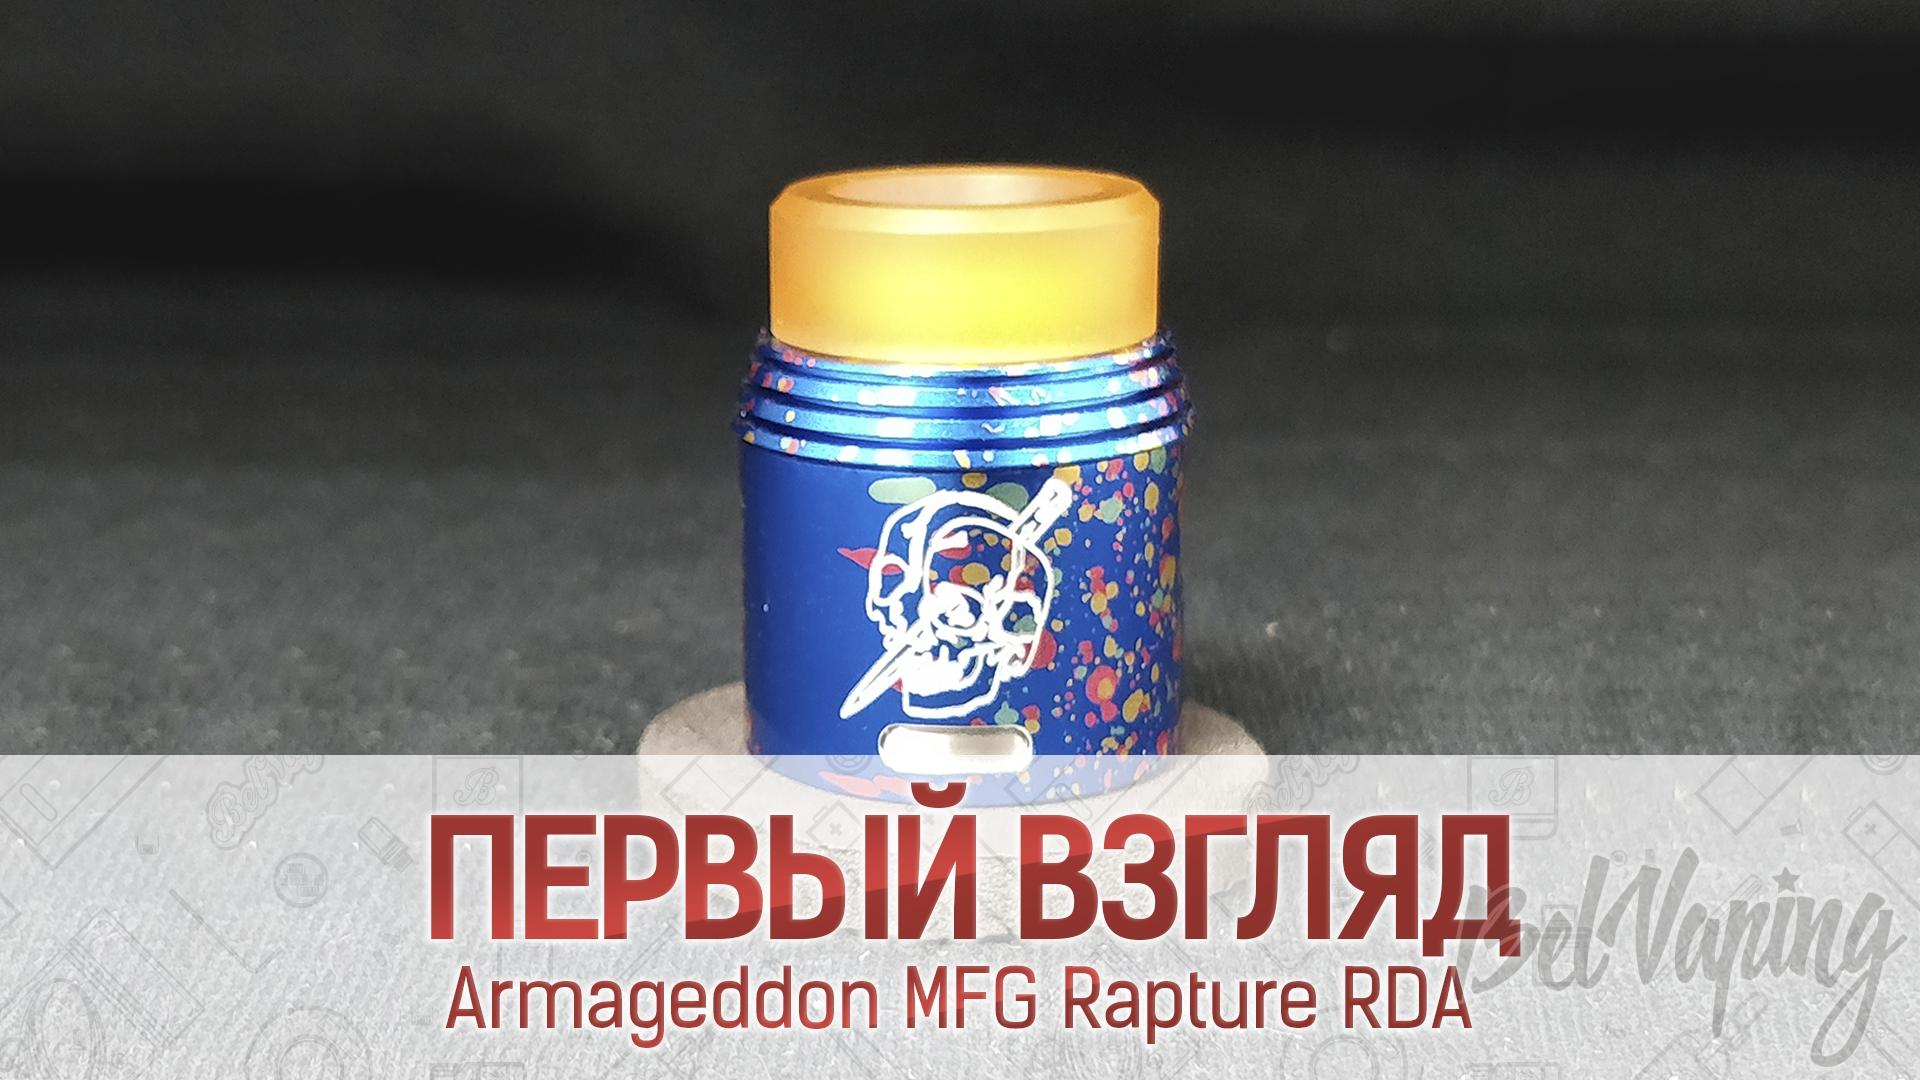 Armageddon MFG Rapture RDA. Первый взгляд